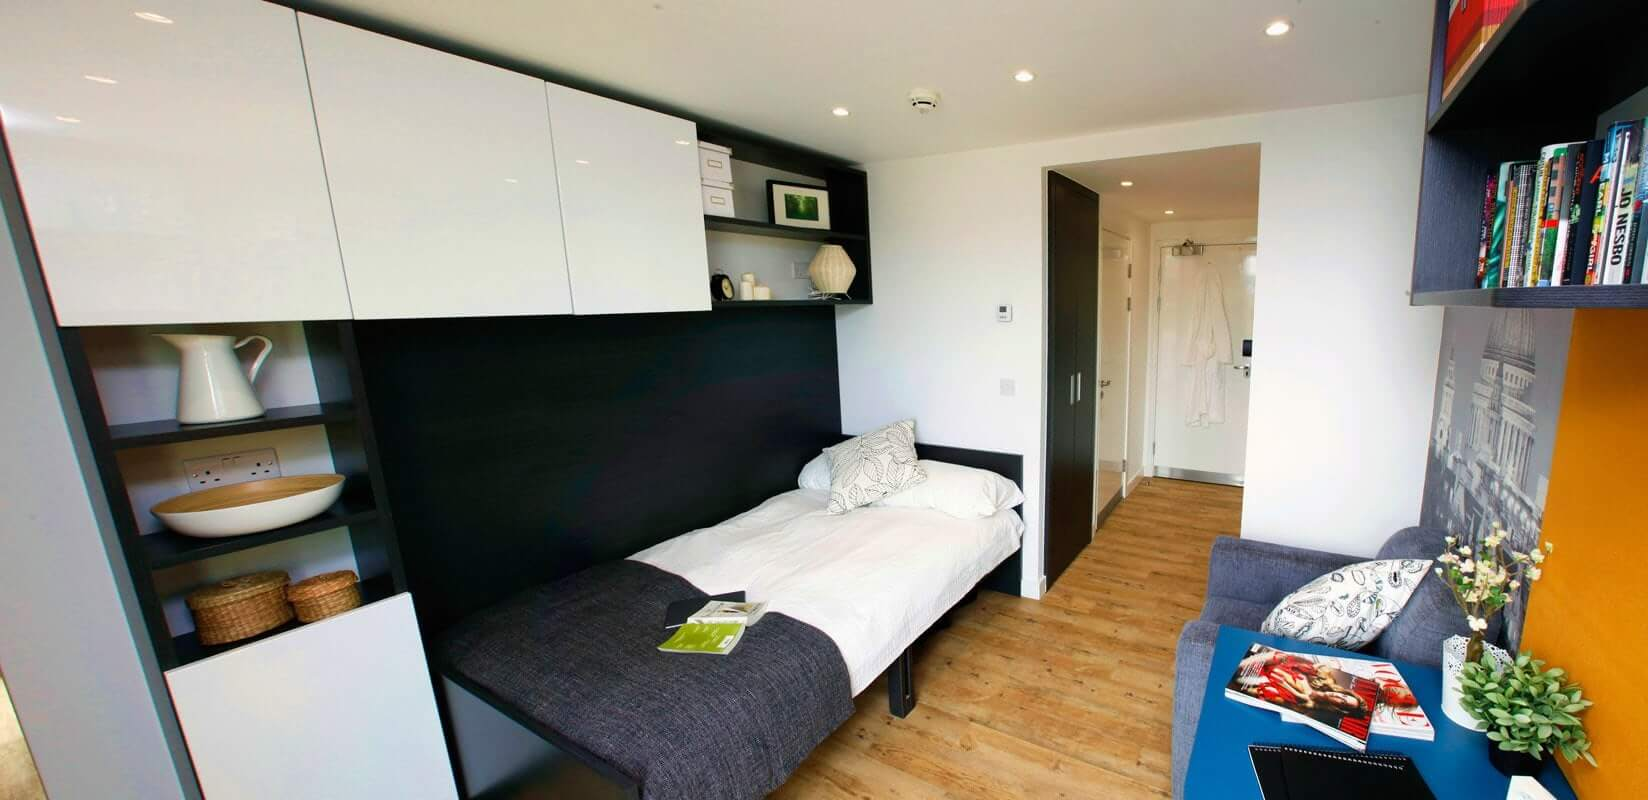 Tower Bridge Student Accommodation  Book for 20192020